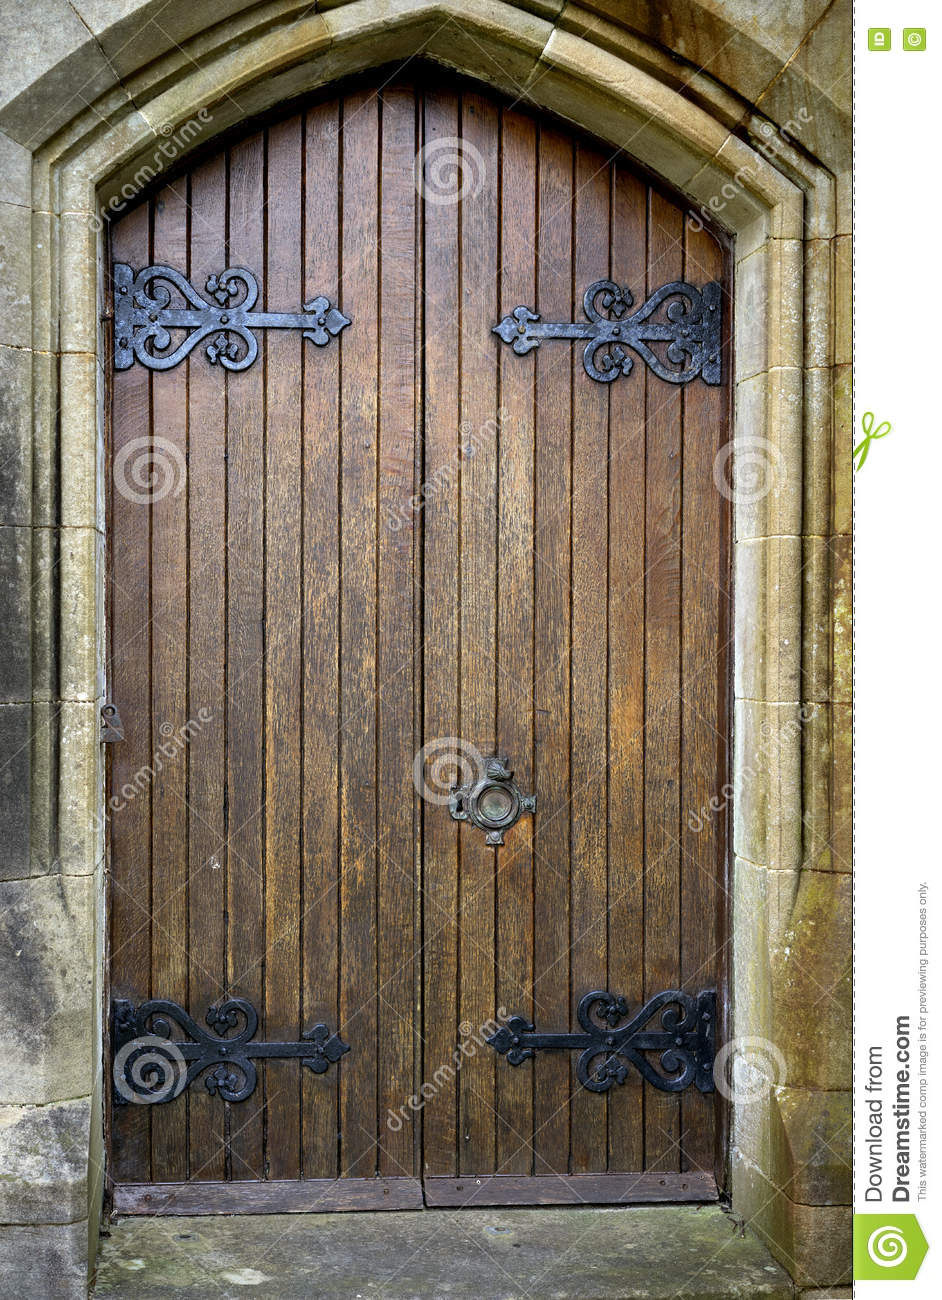 doors double gothic ... & Double Gothic Doors Stock Photo - Image: 74071828 Pezcame.Com